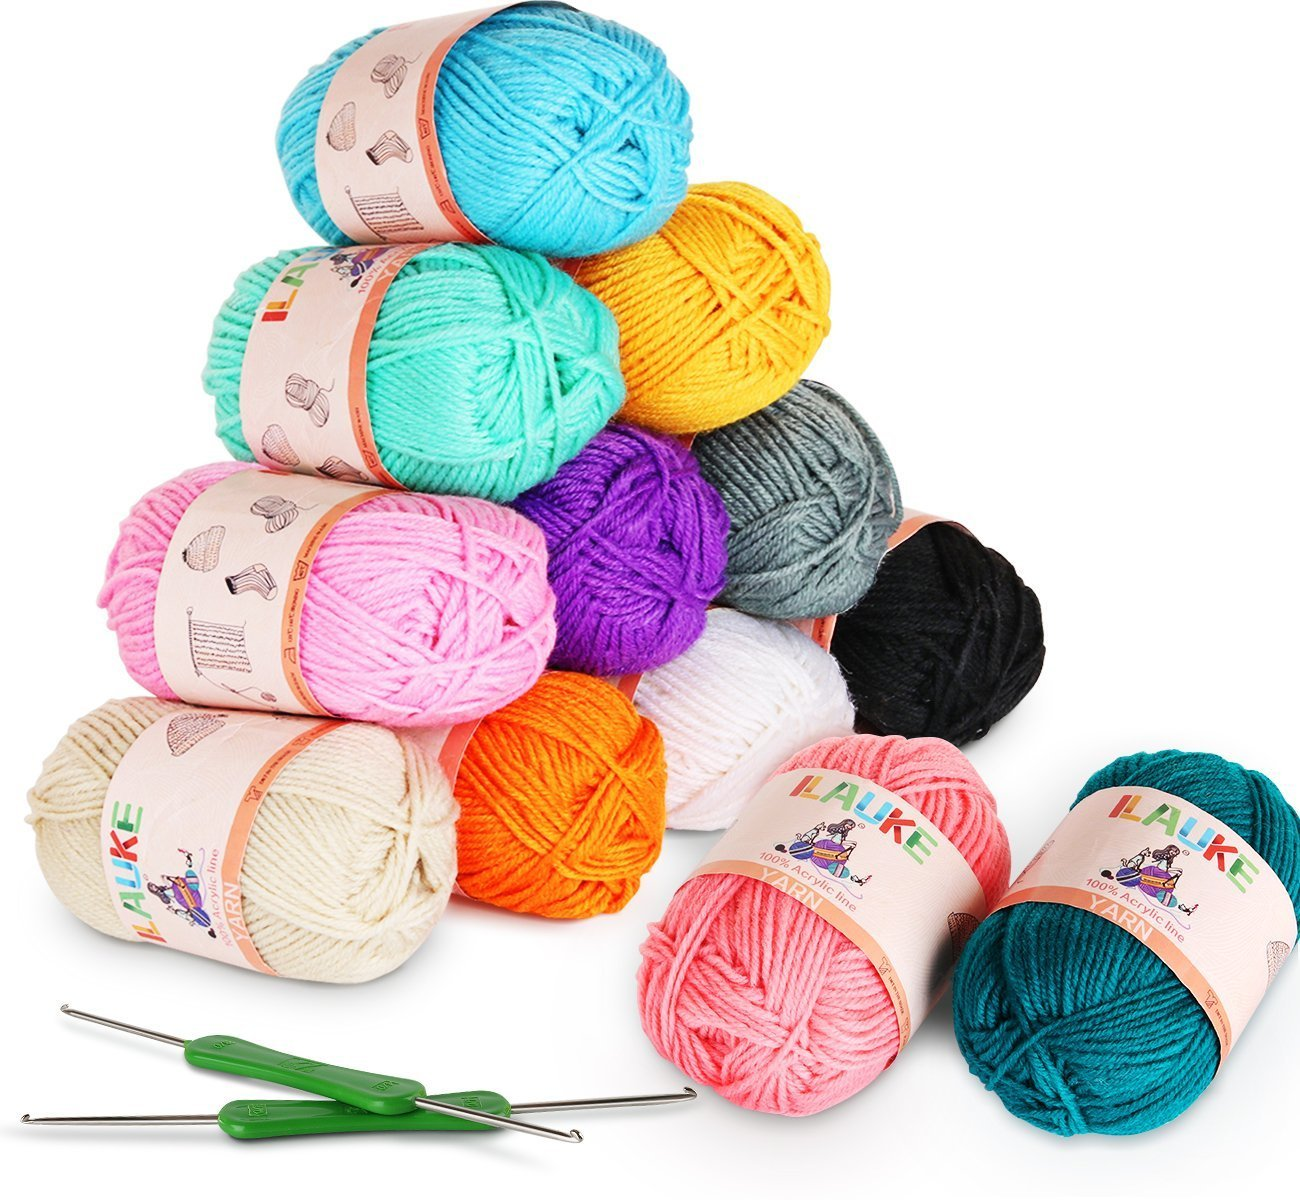 ilauke 12 Acrylic Yarn Skeins Assorted Colors Bonbons 100% Acrylic Soft Yarn for Kids Knitting Crochet & Crafts (50G X 12) 4336926666